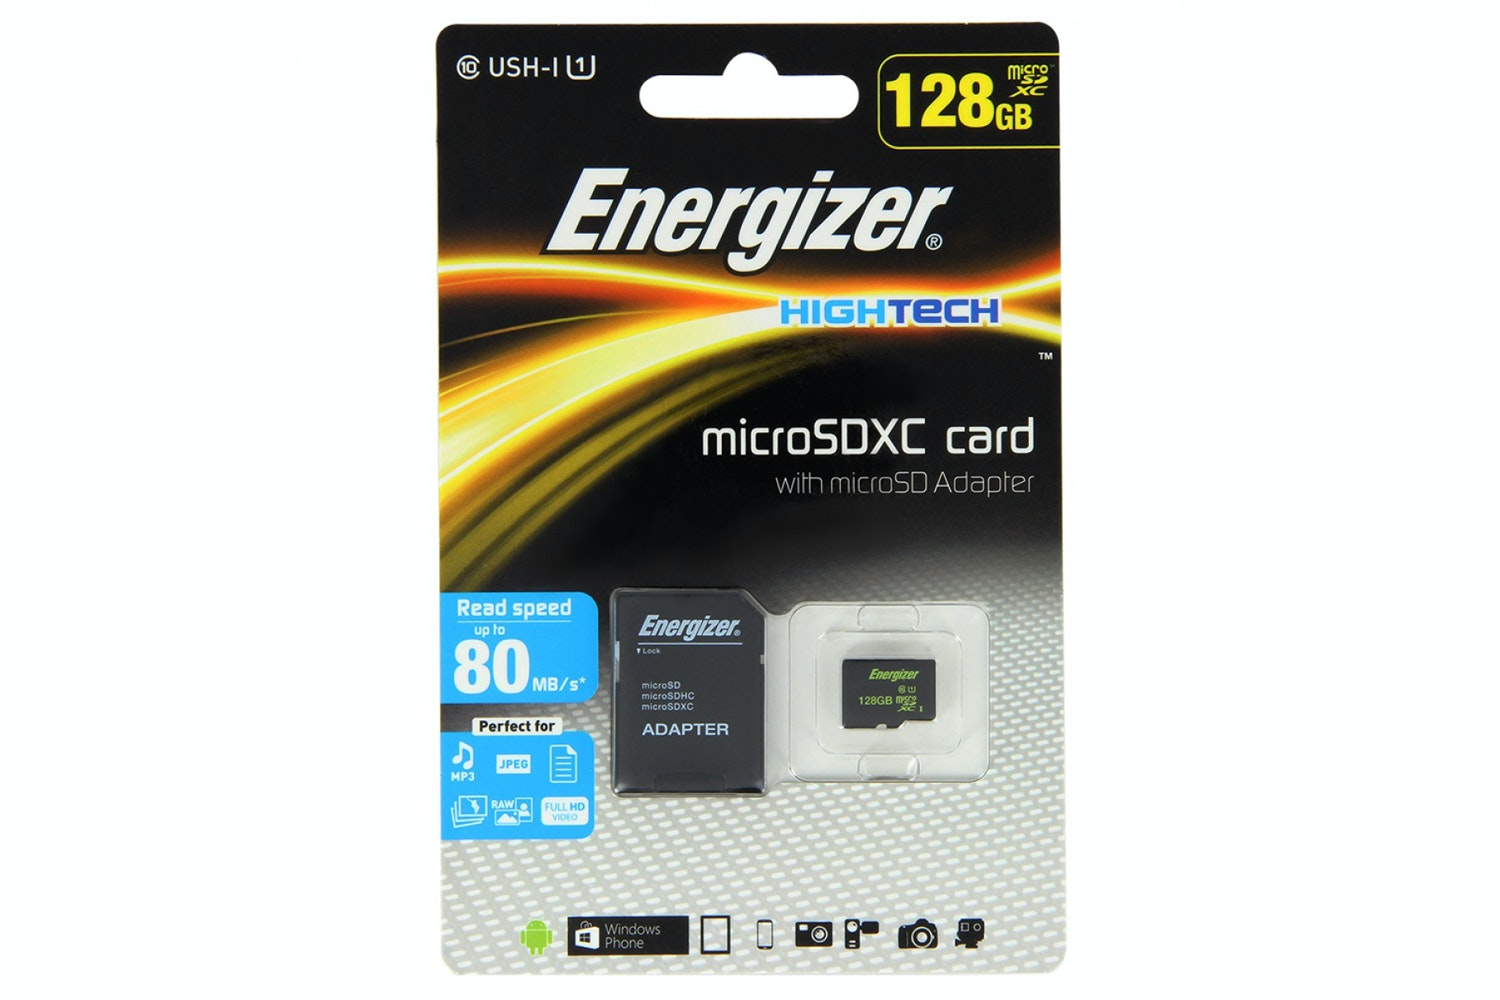 Energizer Hightech Micro SDXC Card and Micro SD Adapter | 128GB